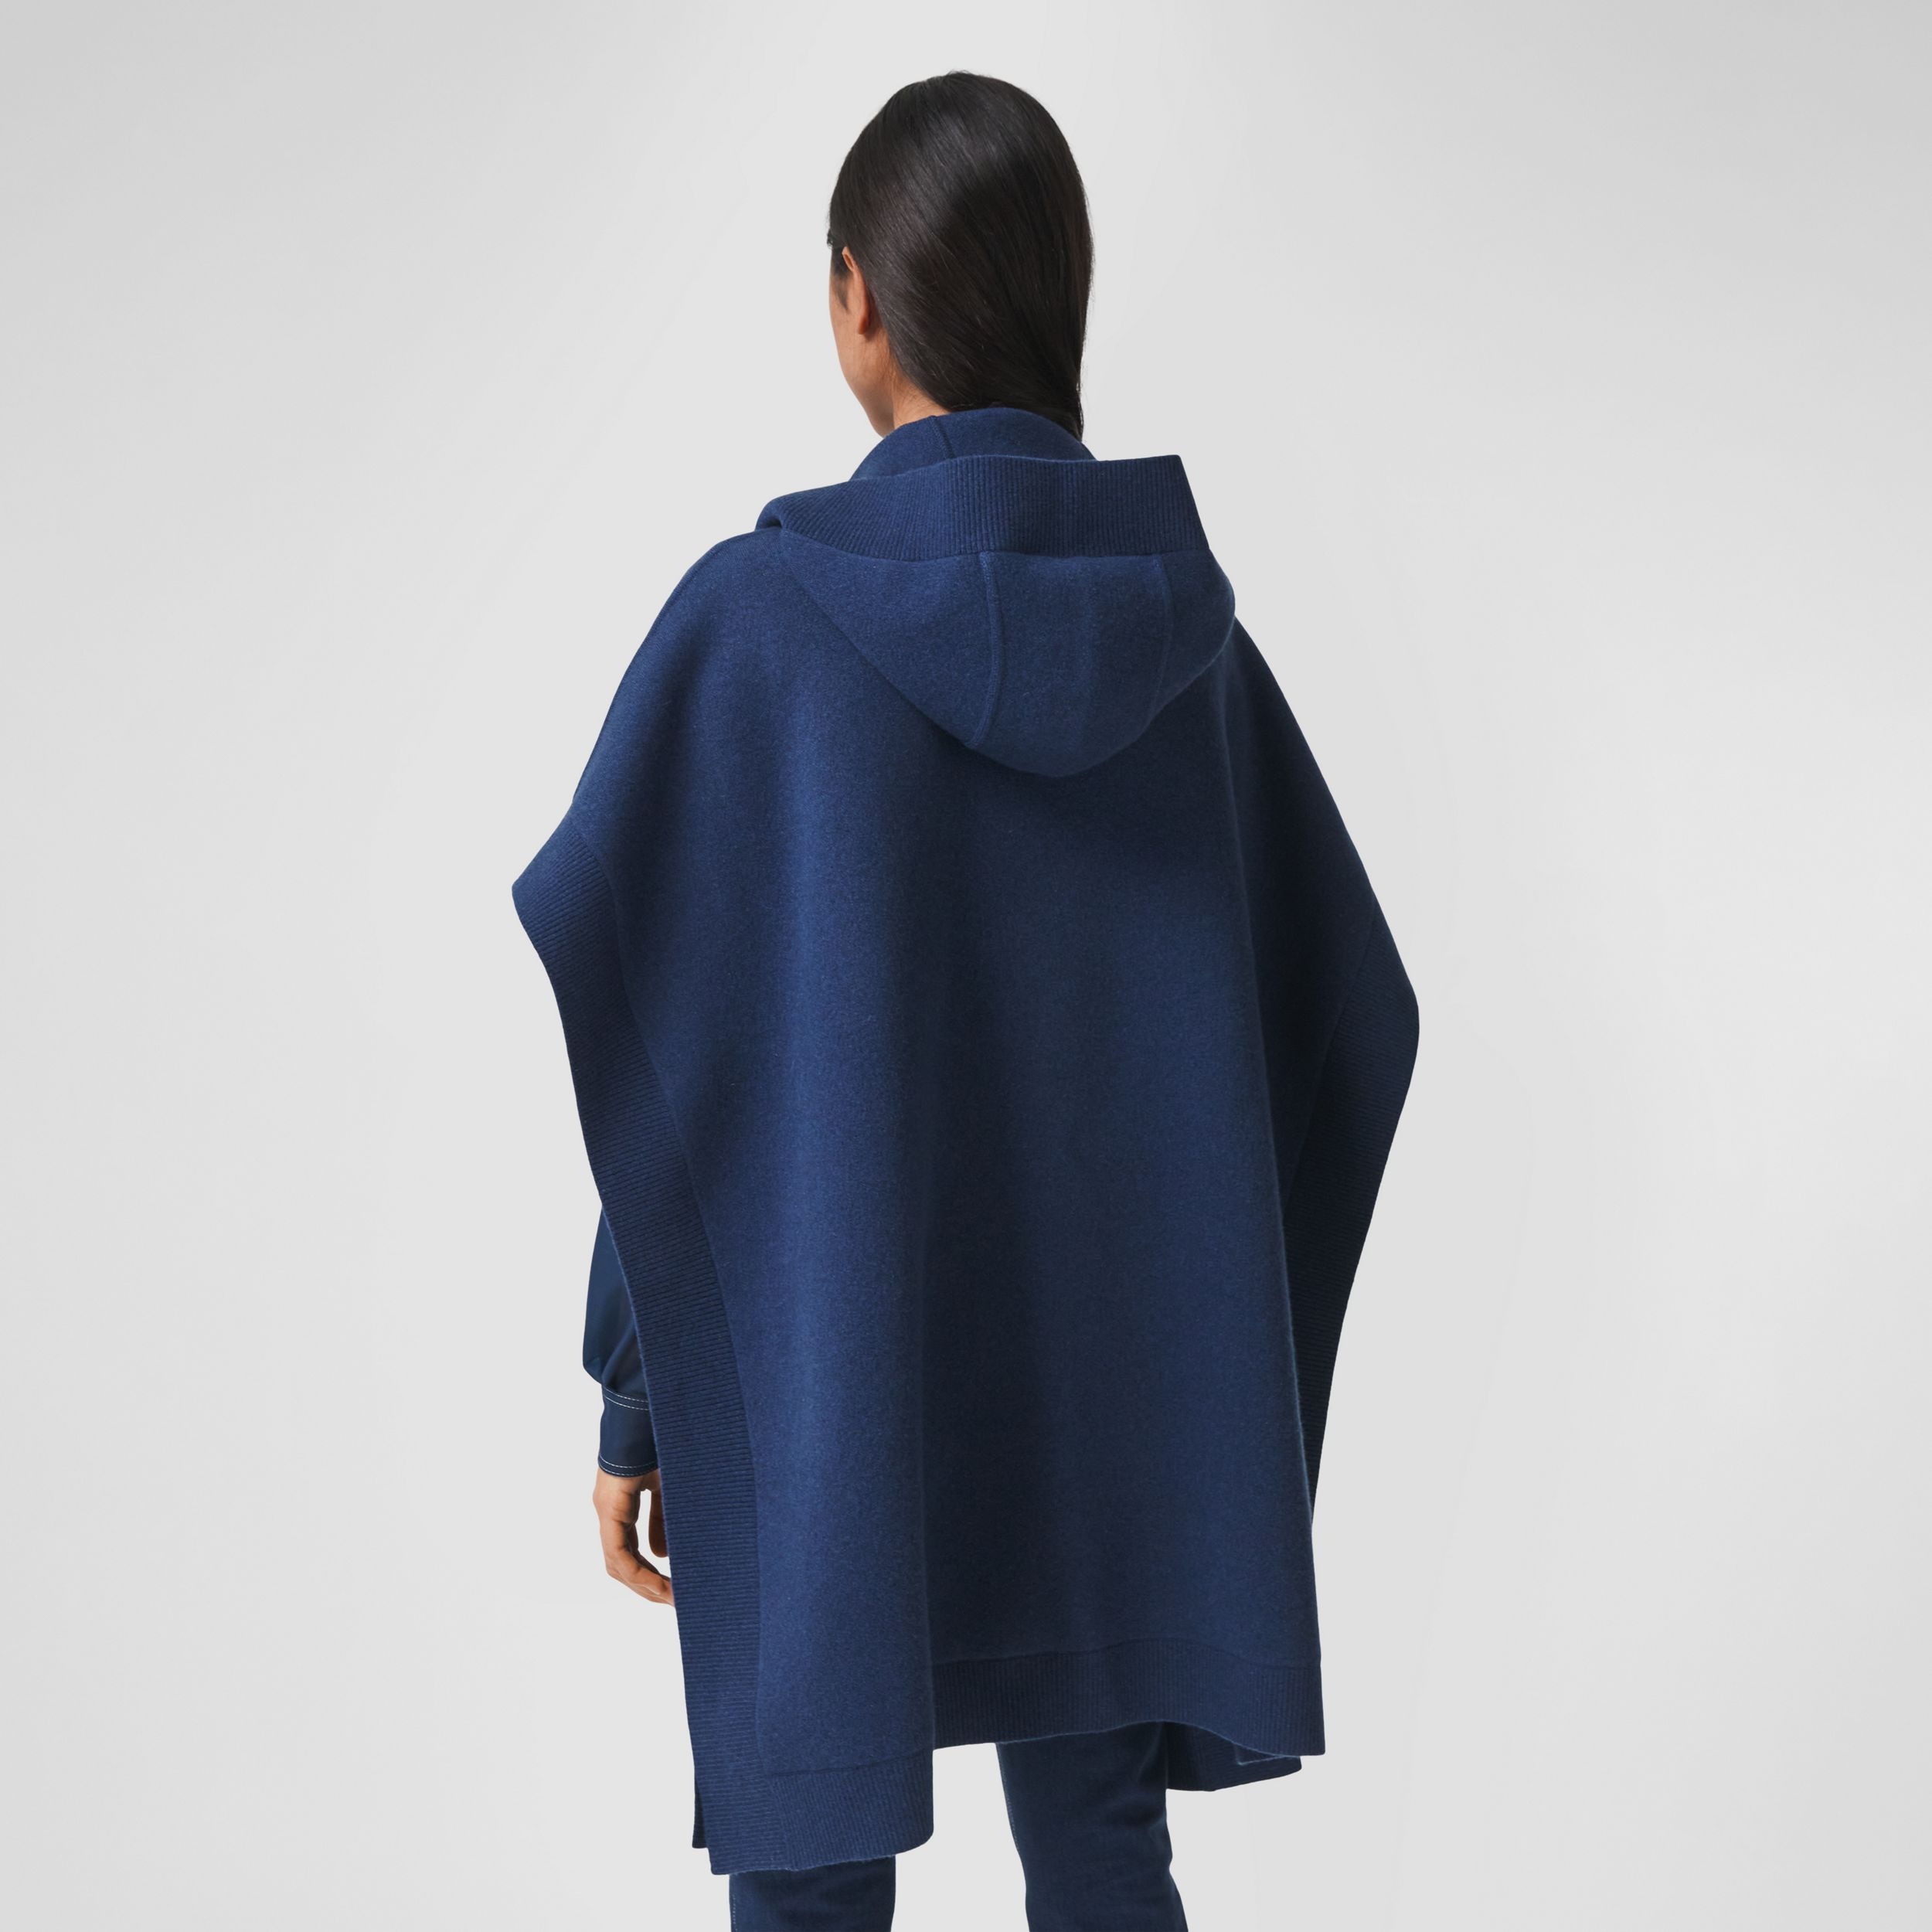 Monogram Motif Cashmere Blend Hooded Cape in Ink Blue - Women | Burberry United States - 3